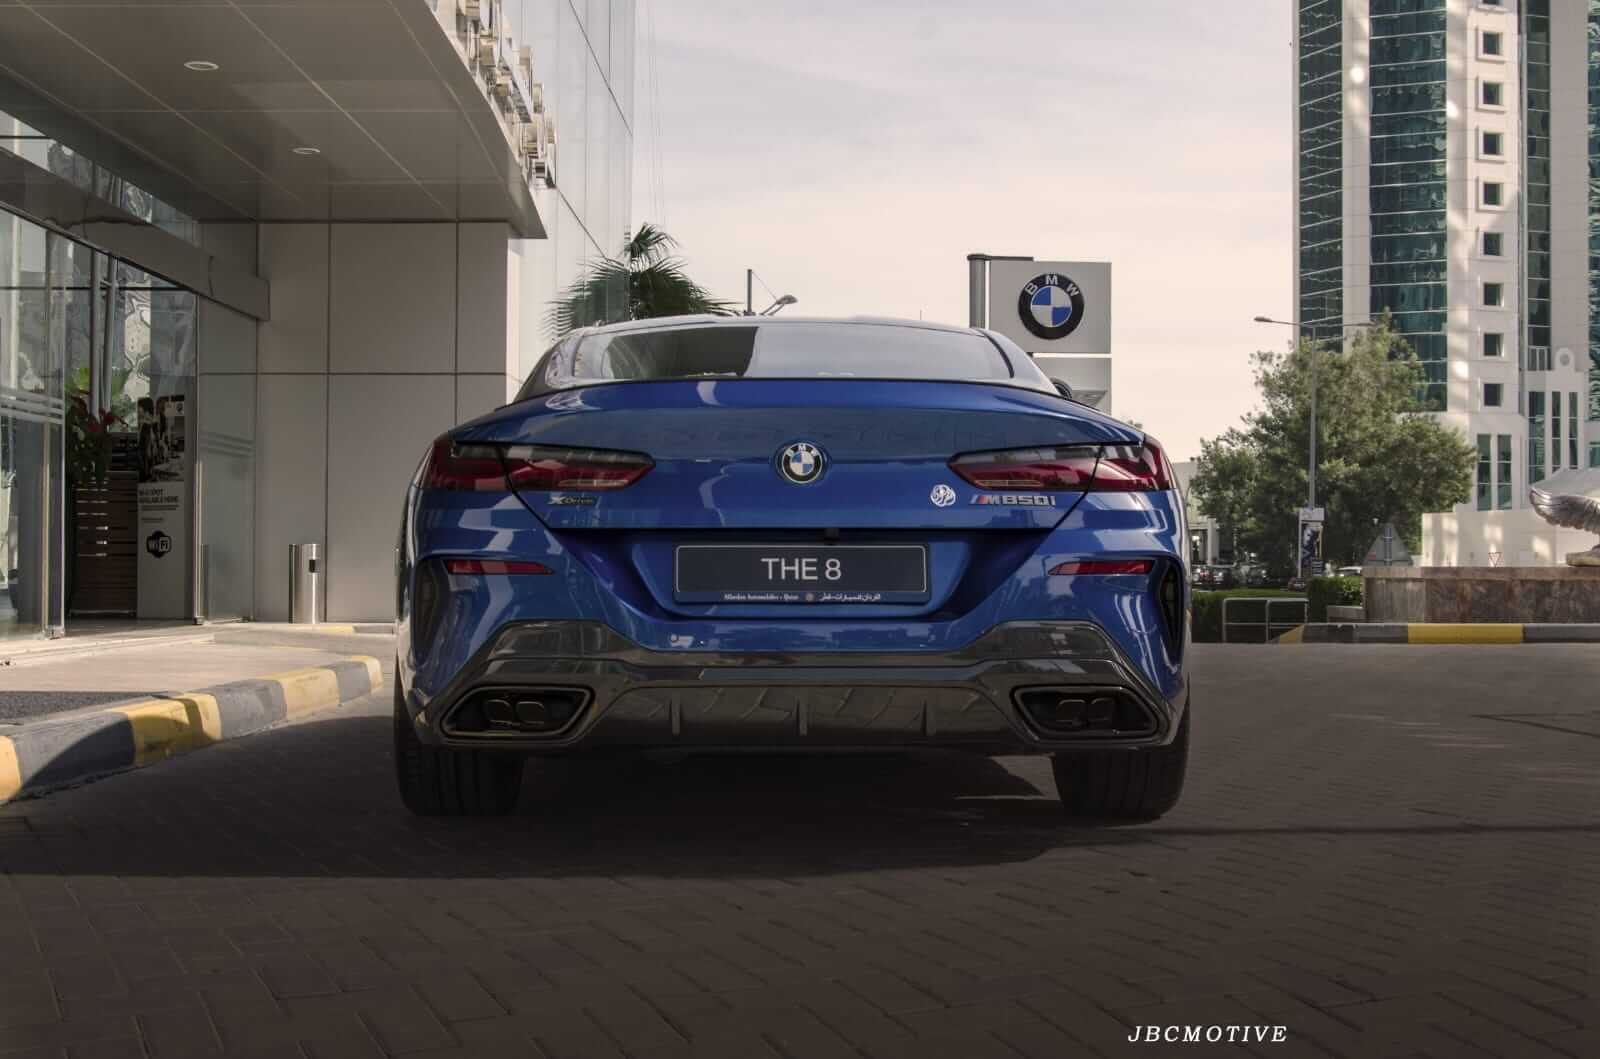 Photo of 2019 BMW 8 SERIES REVIEW WITH JBC MOTIVE